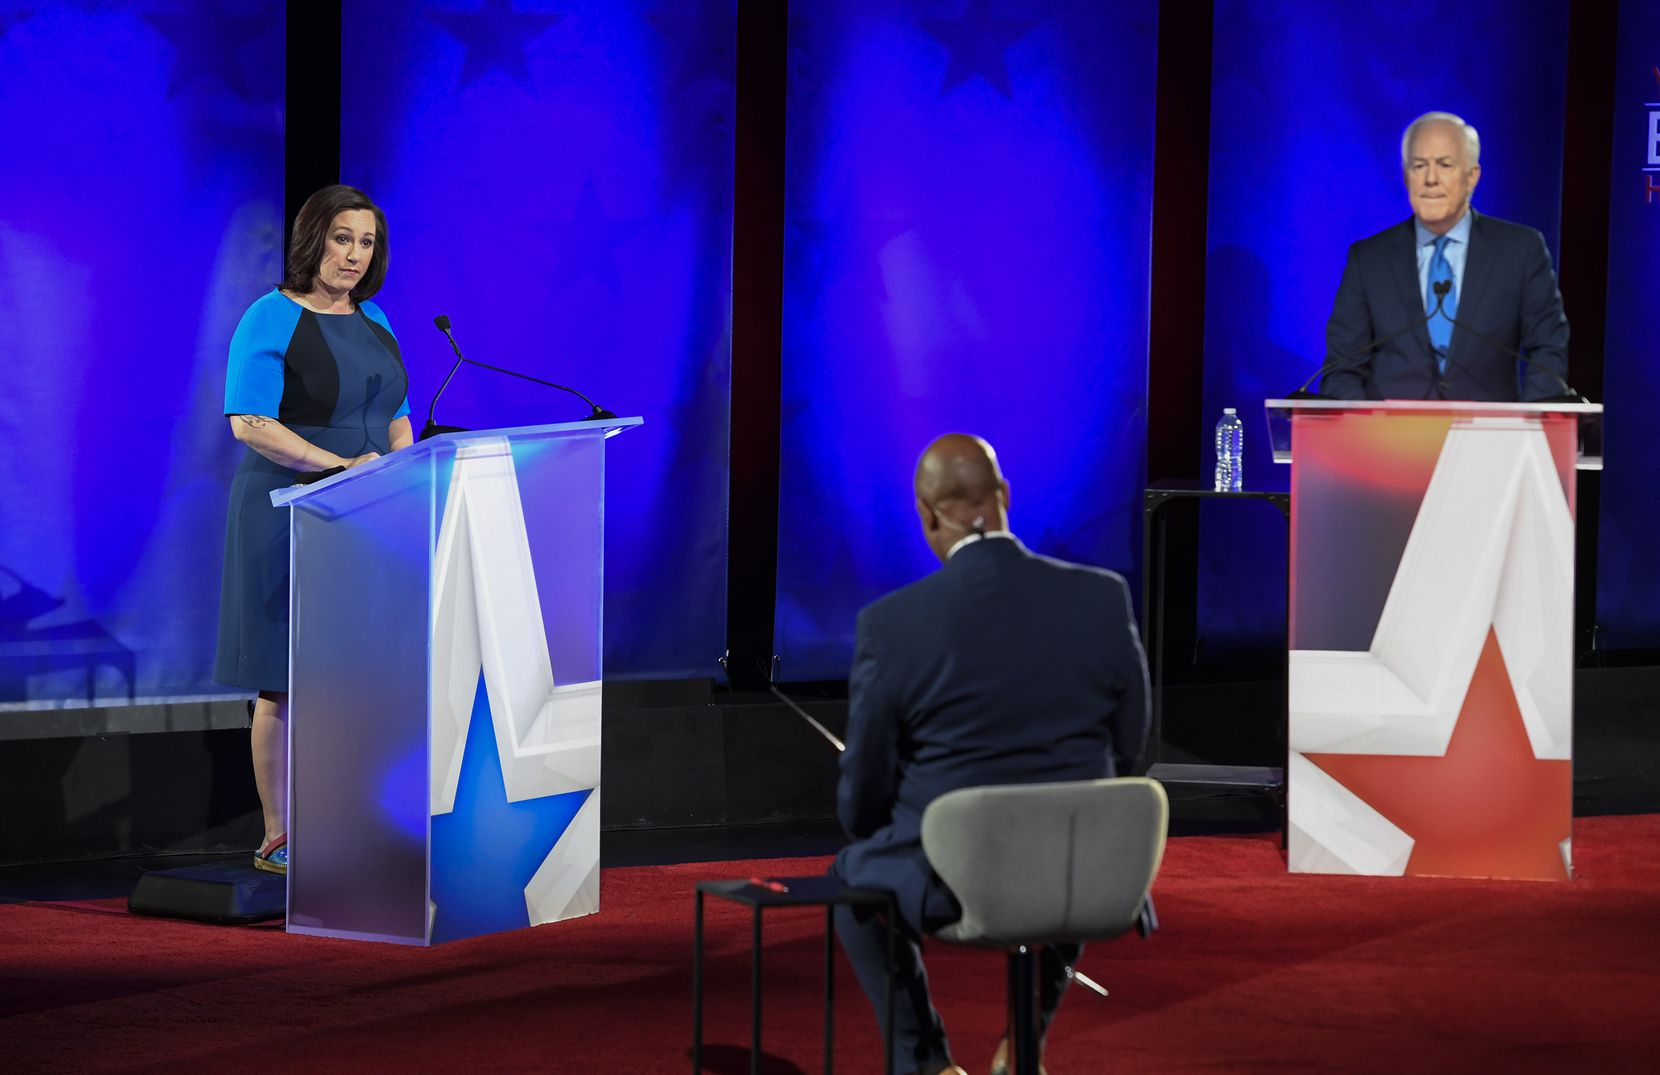 Republican U.S. Sen. John Cornyn of Texas and Democratic challenger MJ Hegar of Round Rock faced off in a televised debate Oct. 9 at the Bullock Texas State History Museum.